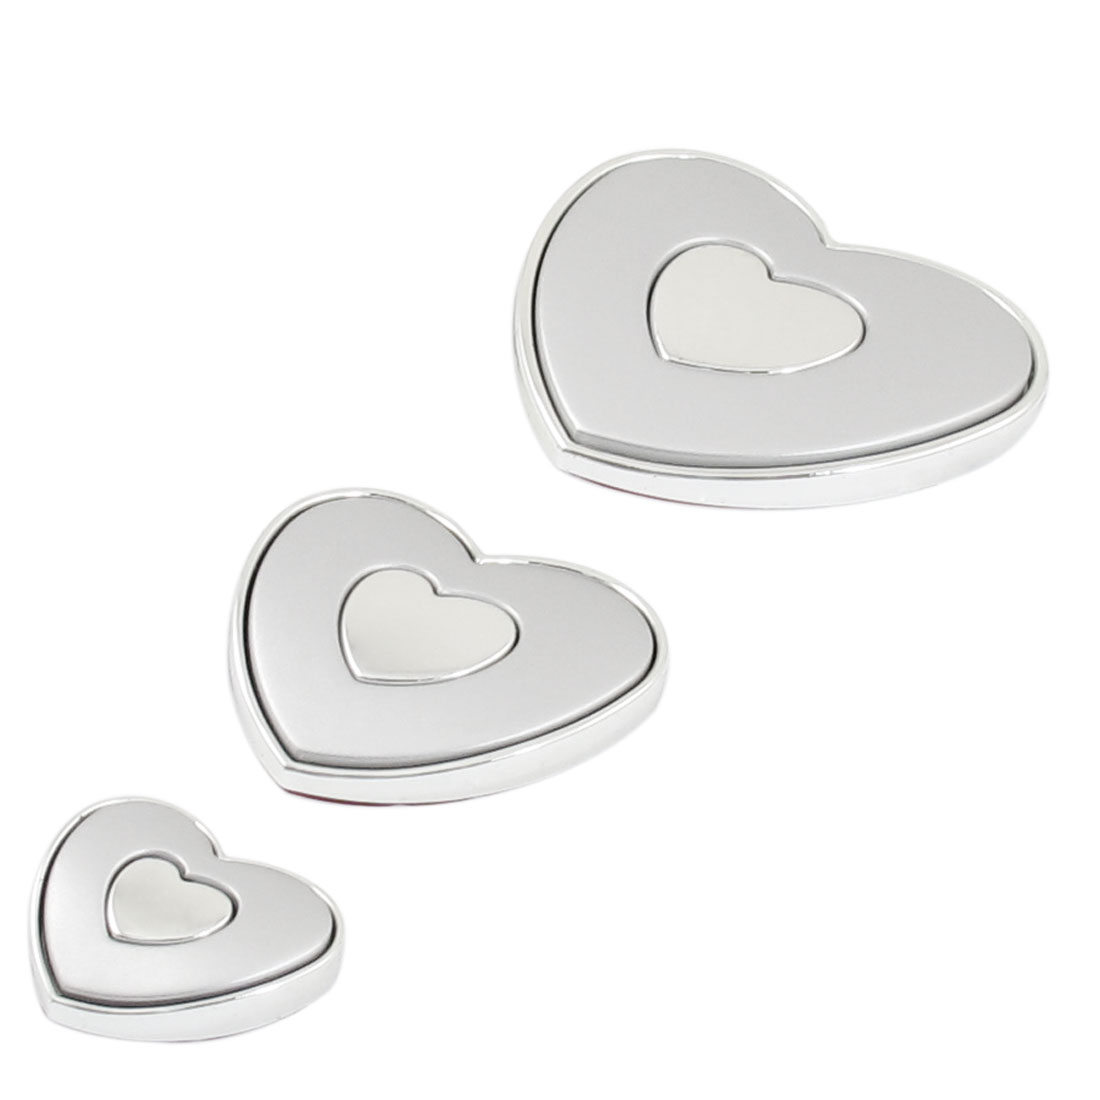 3 Pcs Gray Silver Tone Plastic Heart-shaped Auto Emblem Door Car Badge Stickers